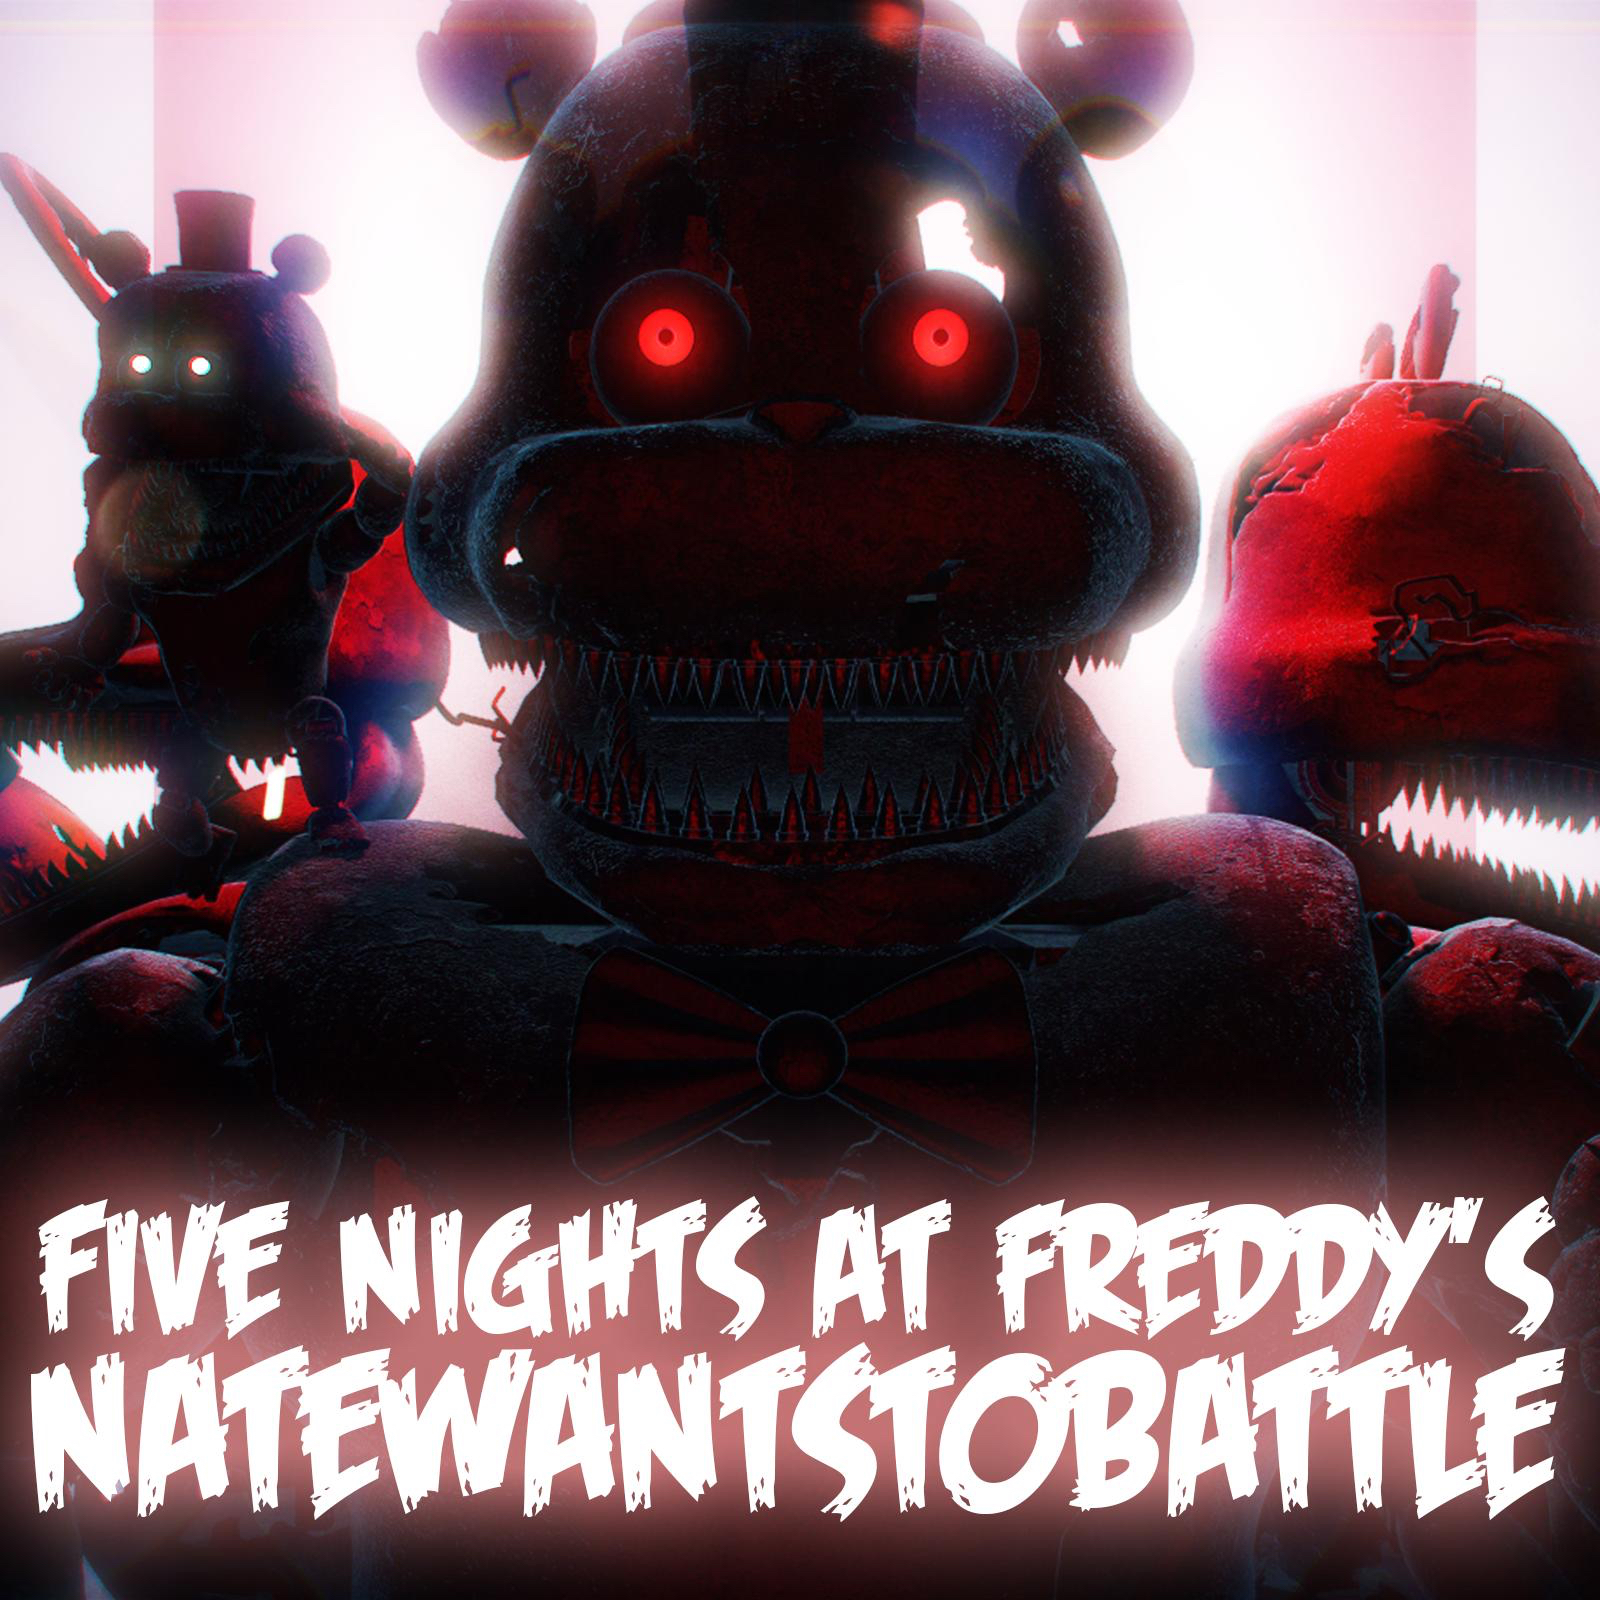 NateWantsToBattle - Five Nights at Freddy's (2015)